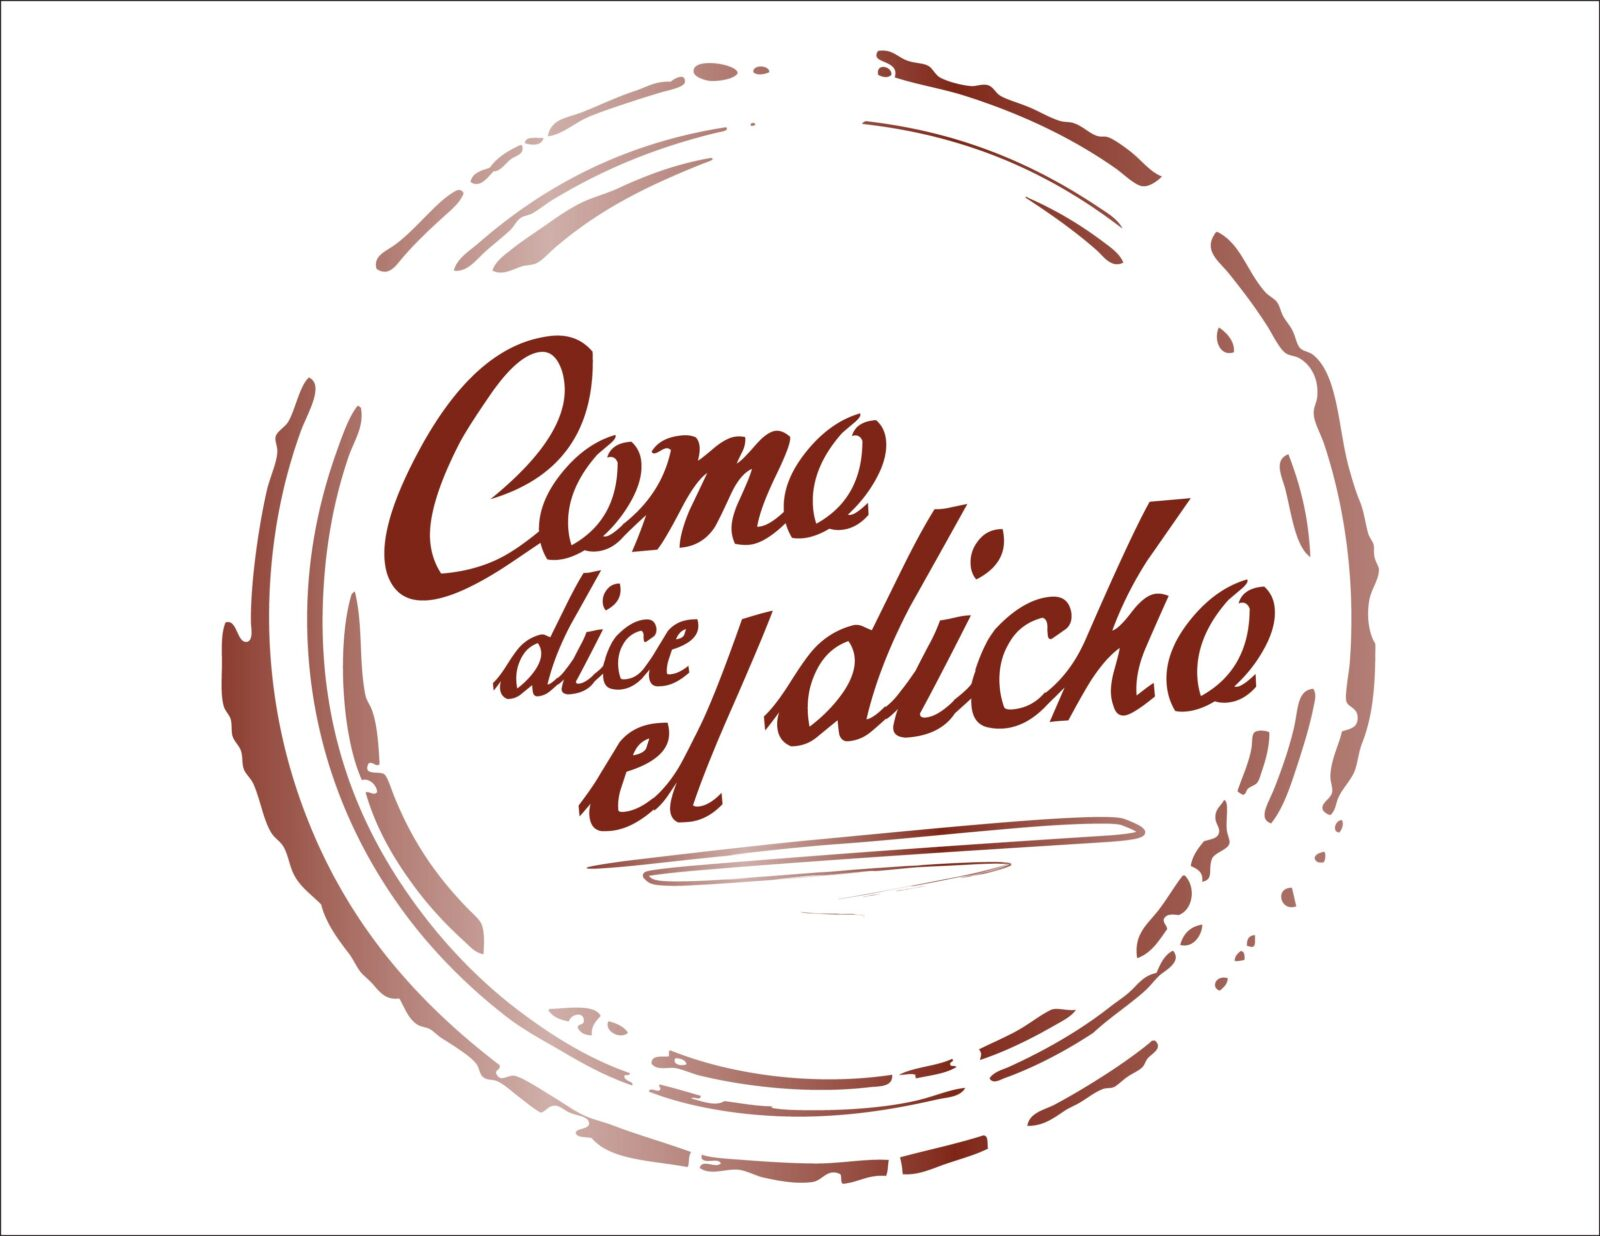 If telenovelas feel like a lot to watch, there are other strong Mexican dramas with less tropes. Try out 'Como Dice el Dicho' to begin your journey.